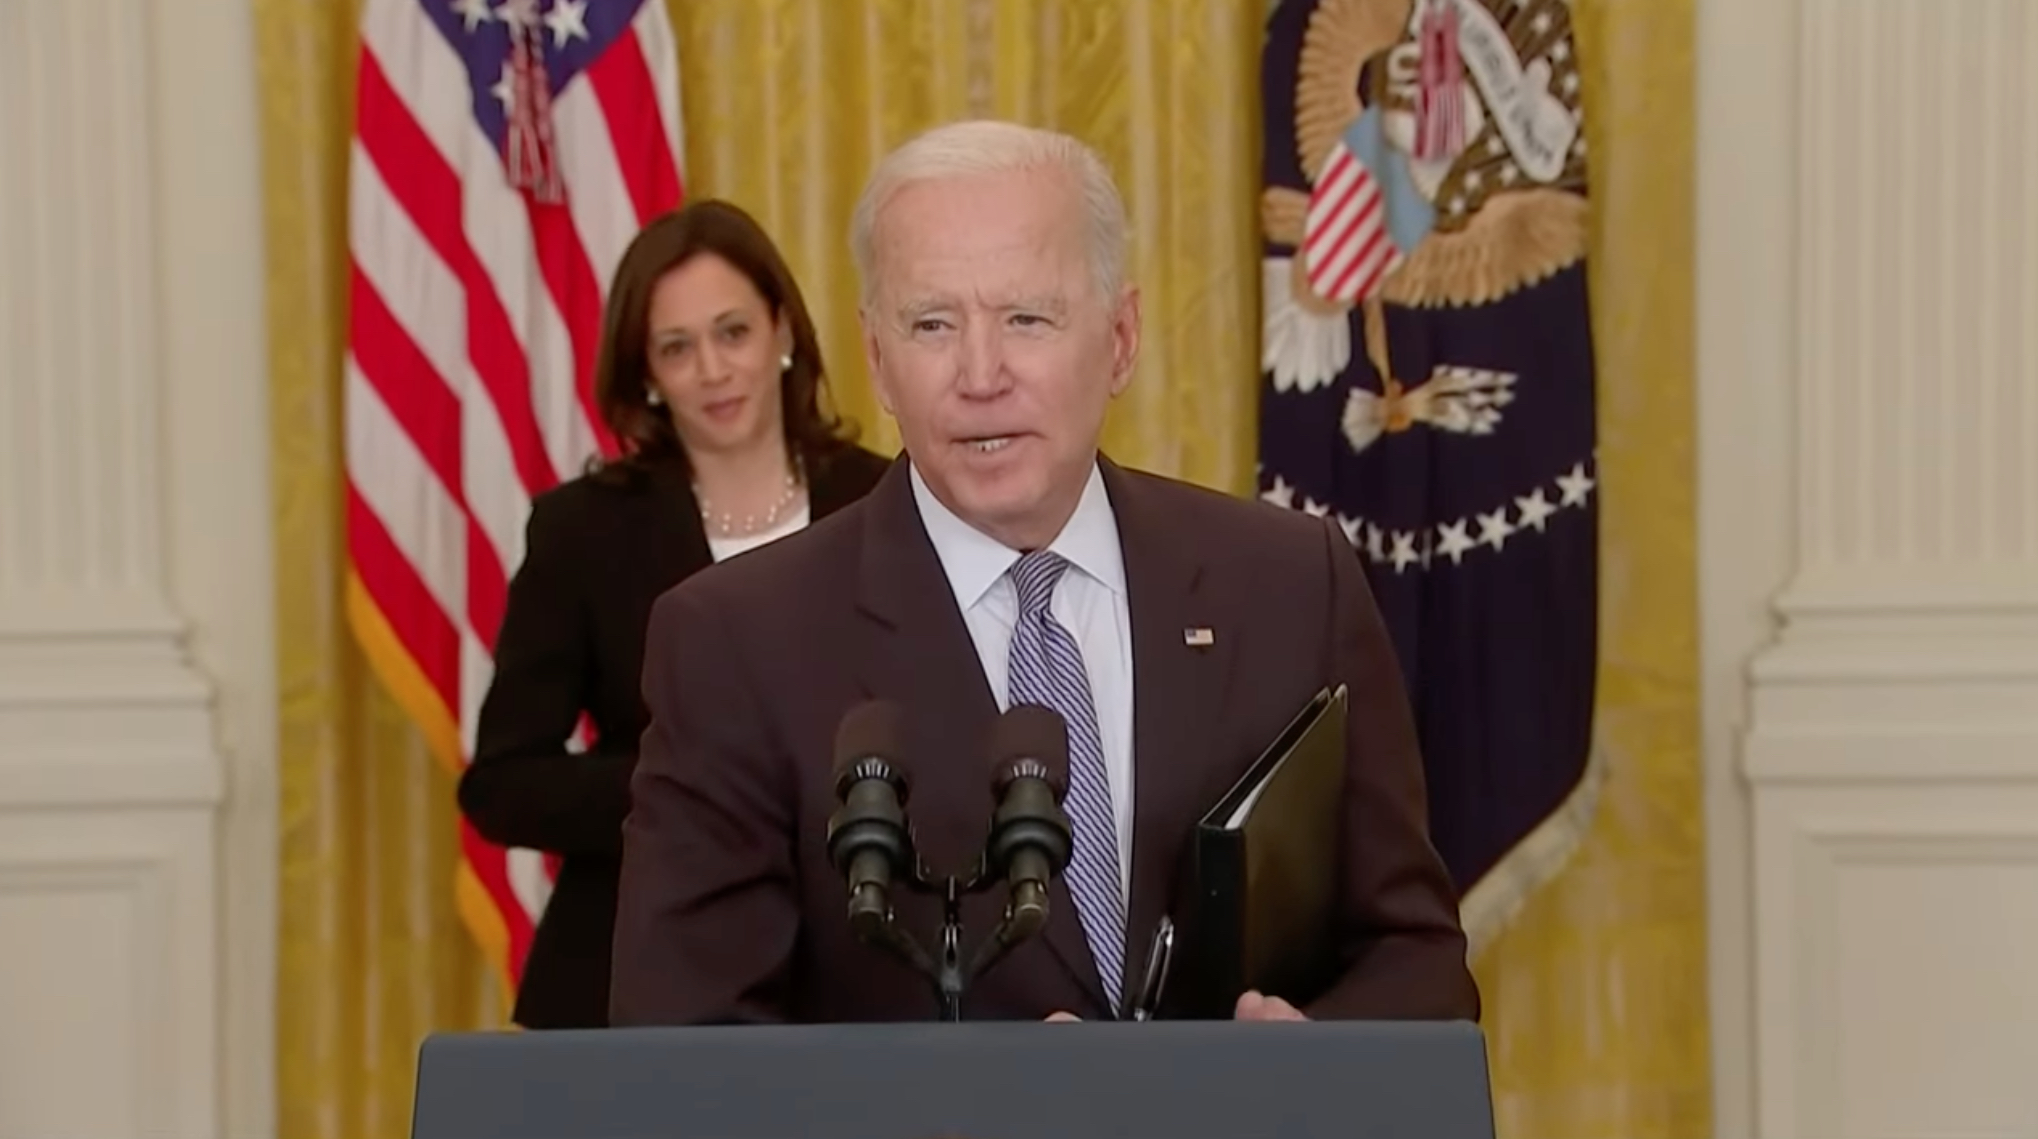 Joe Biden speaks about Palestine and Israel at the White House